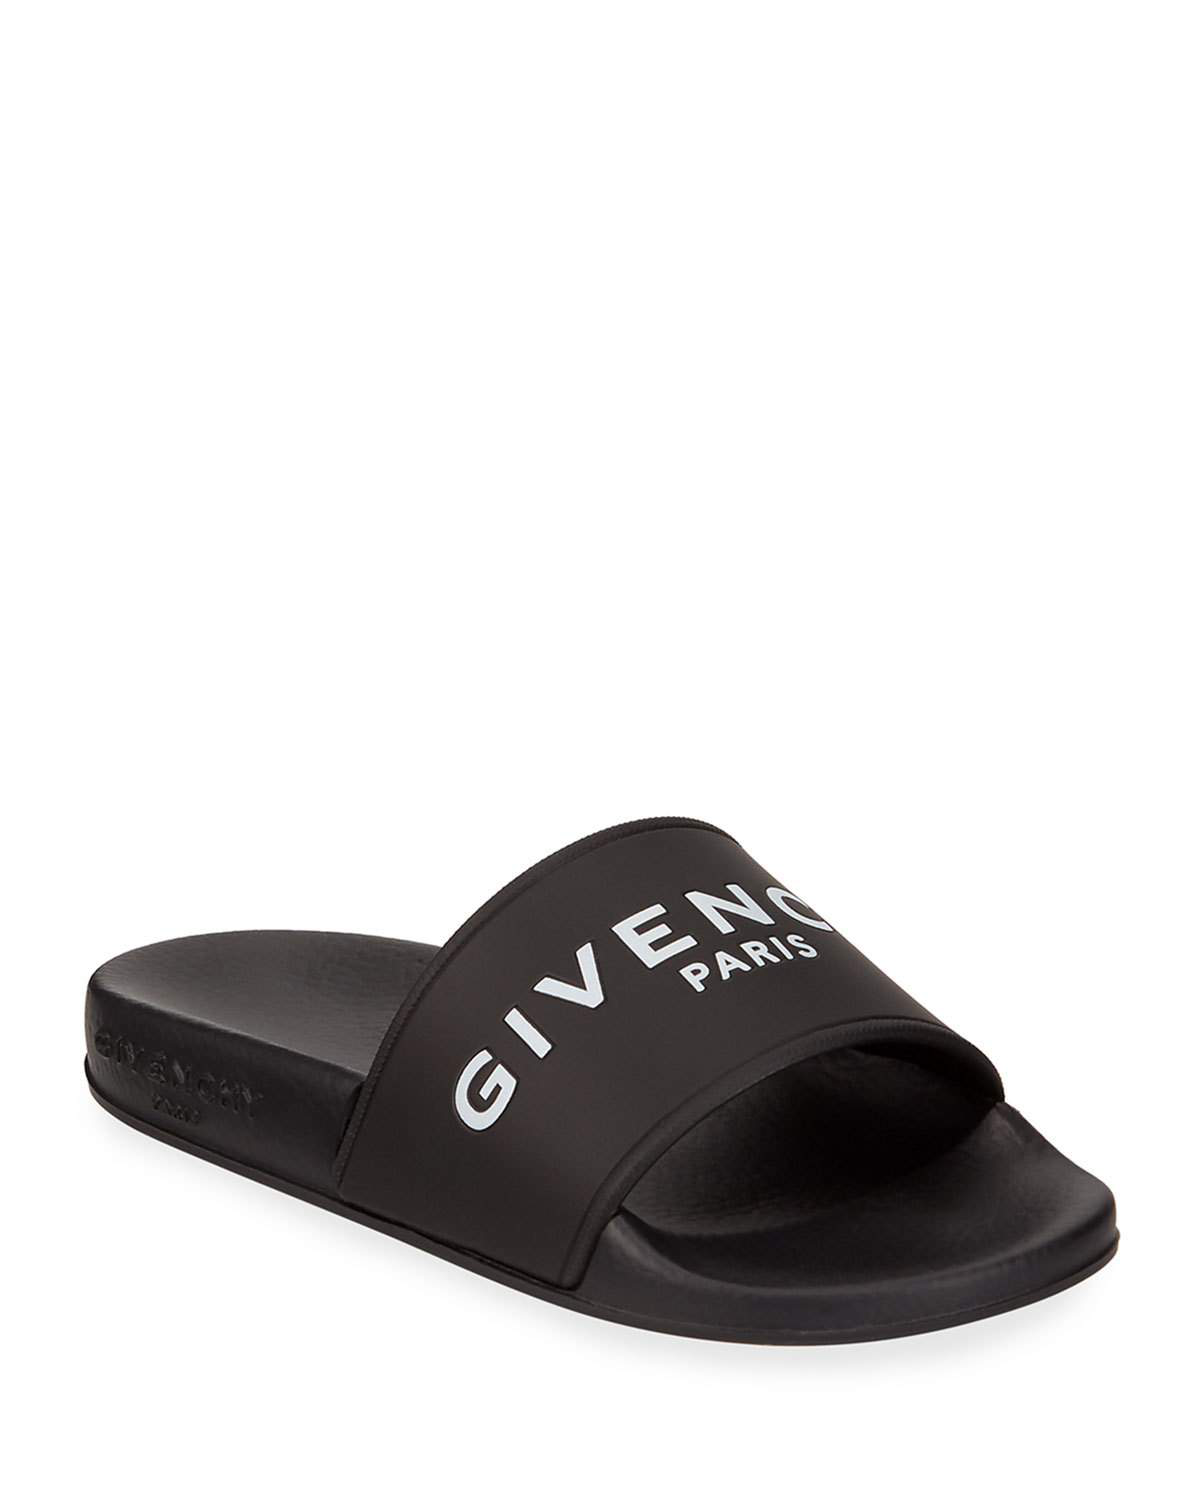 98f1a9f1f07a Star-textured rubber sole. Available in Black White. Made in Italy. Givenchy  Women s Logo Rubber Slide Sandals - Black Size 10 A great designer gift.